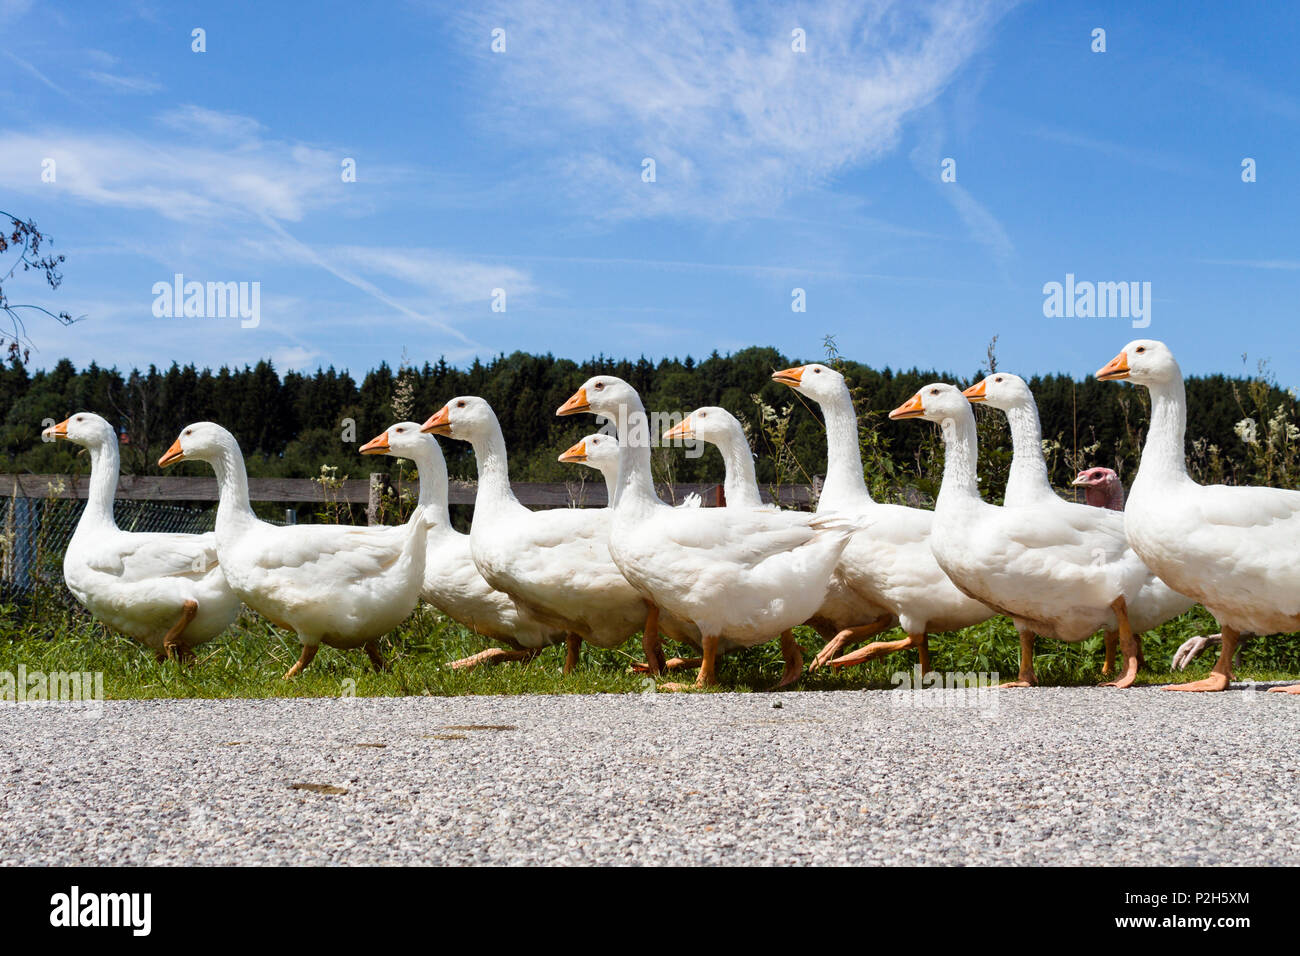 Domestic geese walking in a row, Upper Bavaria, Germany, Europe - Stock Image